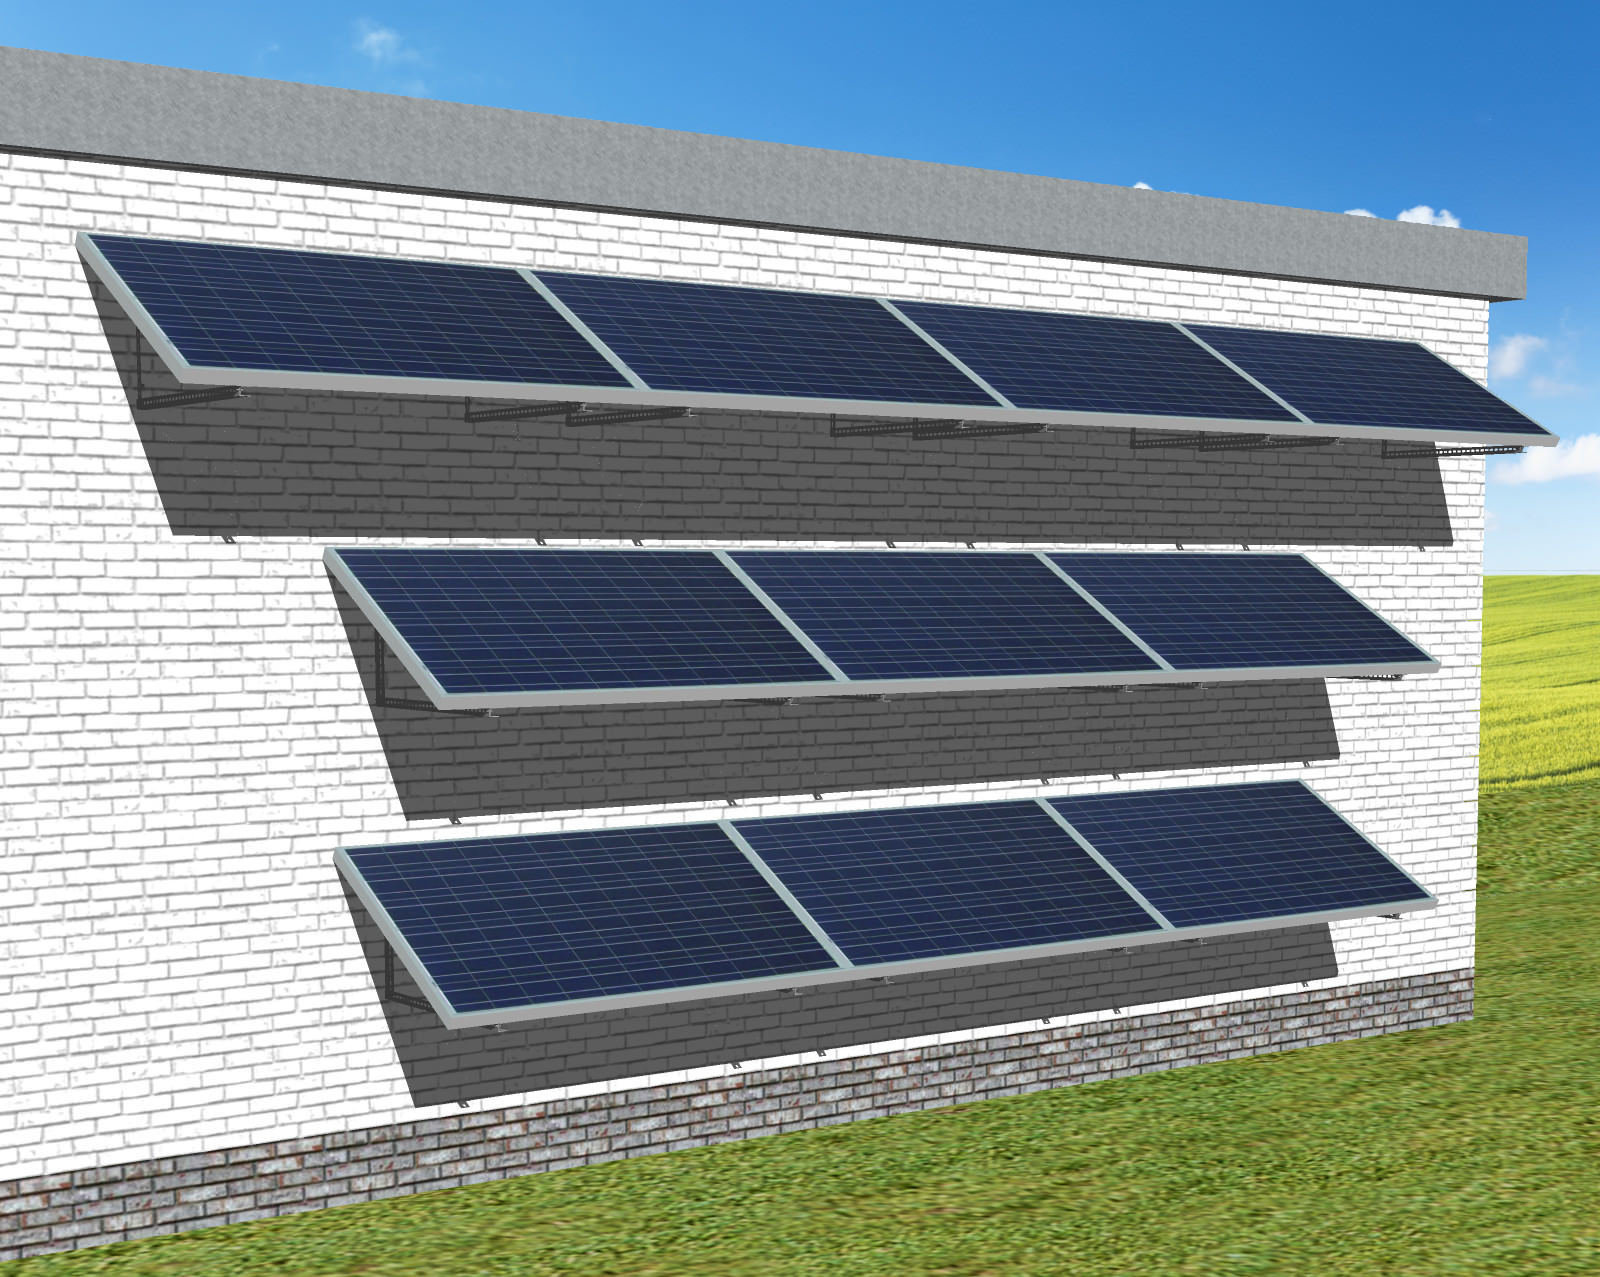 "myCleantech-Solar.org™ - Komplett Solaranlage Fassade 810 - 6'168 WattP ""Einfache Selbstmontage - do it yourself"" oder Aufbau durch unsere Fachleute ab... K20180715-01 - Let's developp your renewable project togheter"